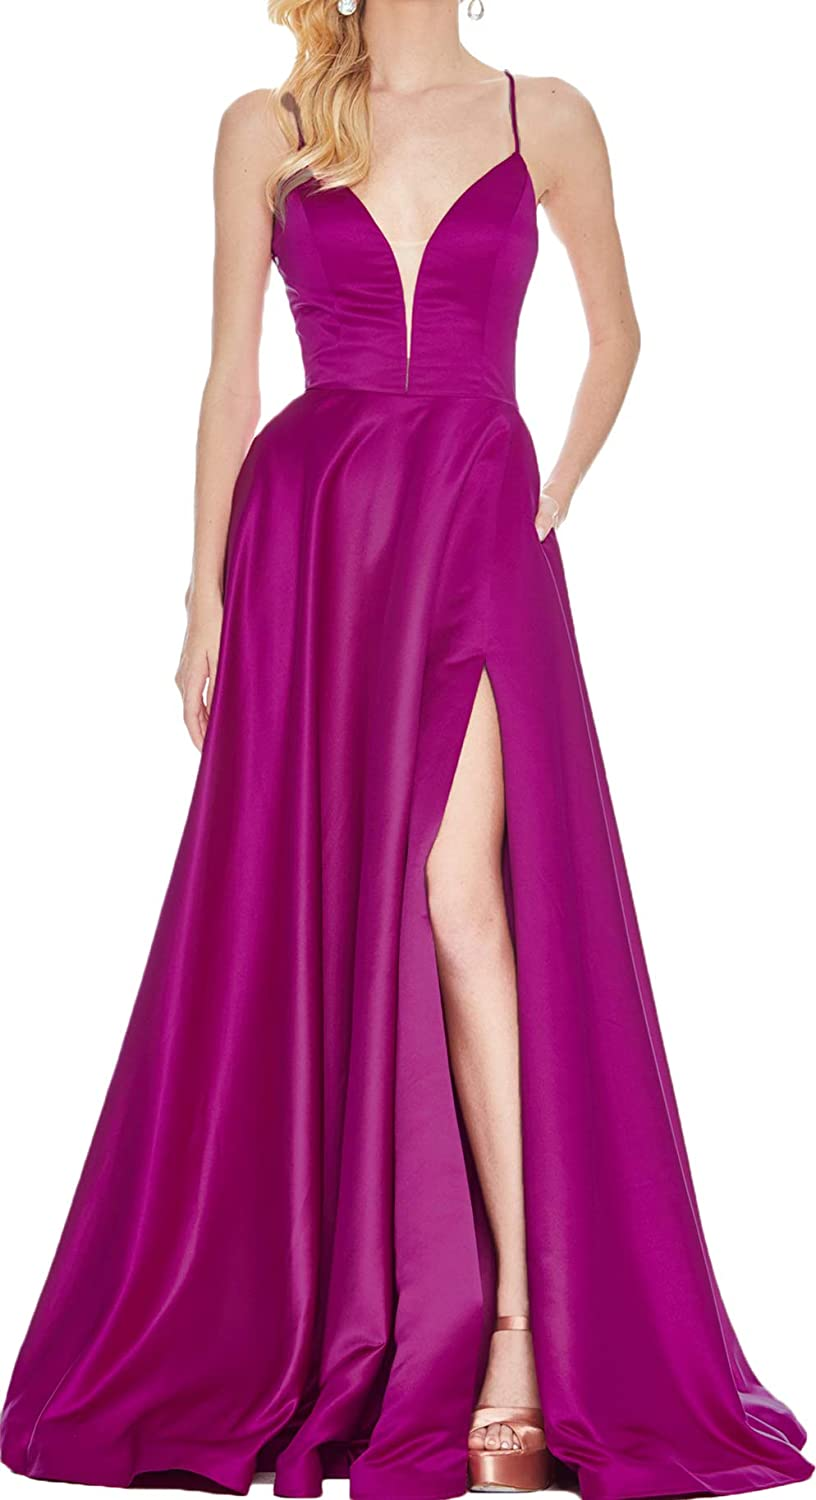 Fuchsia Rmaytiked Womens V Neck Spaghetti Strap Prom Dresses Long Side Slit Backless Formal Evening Ball Gowns with Pockets